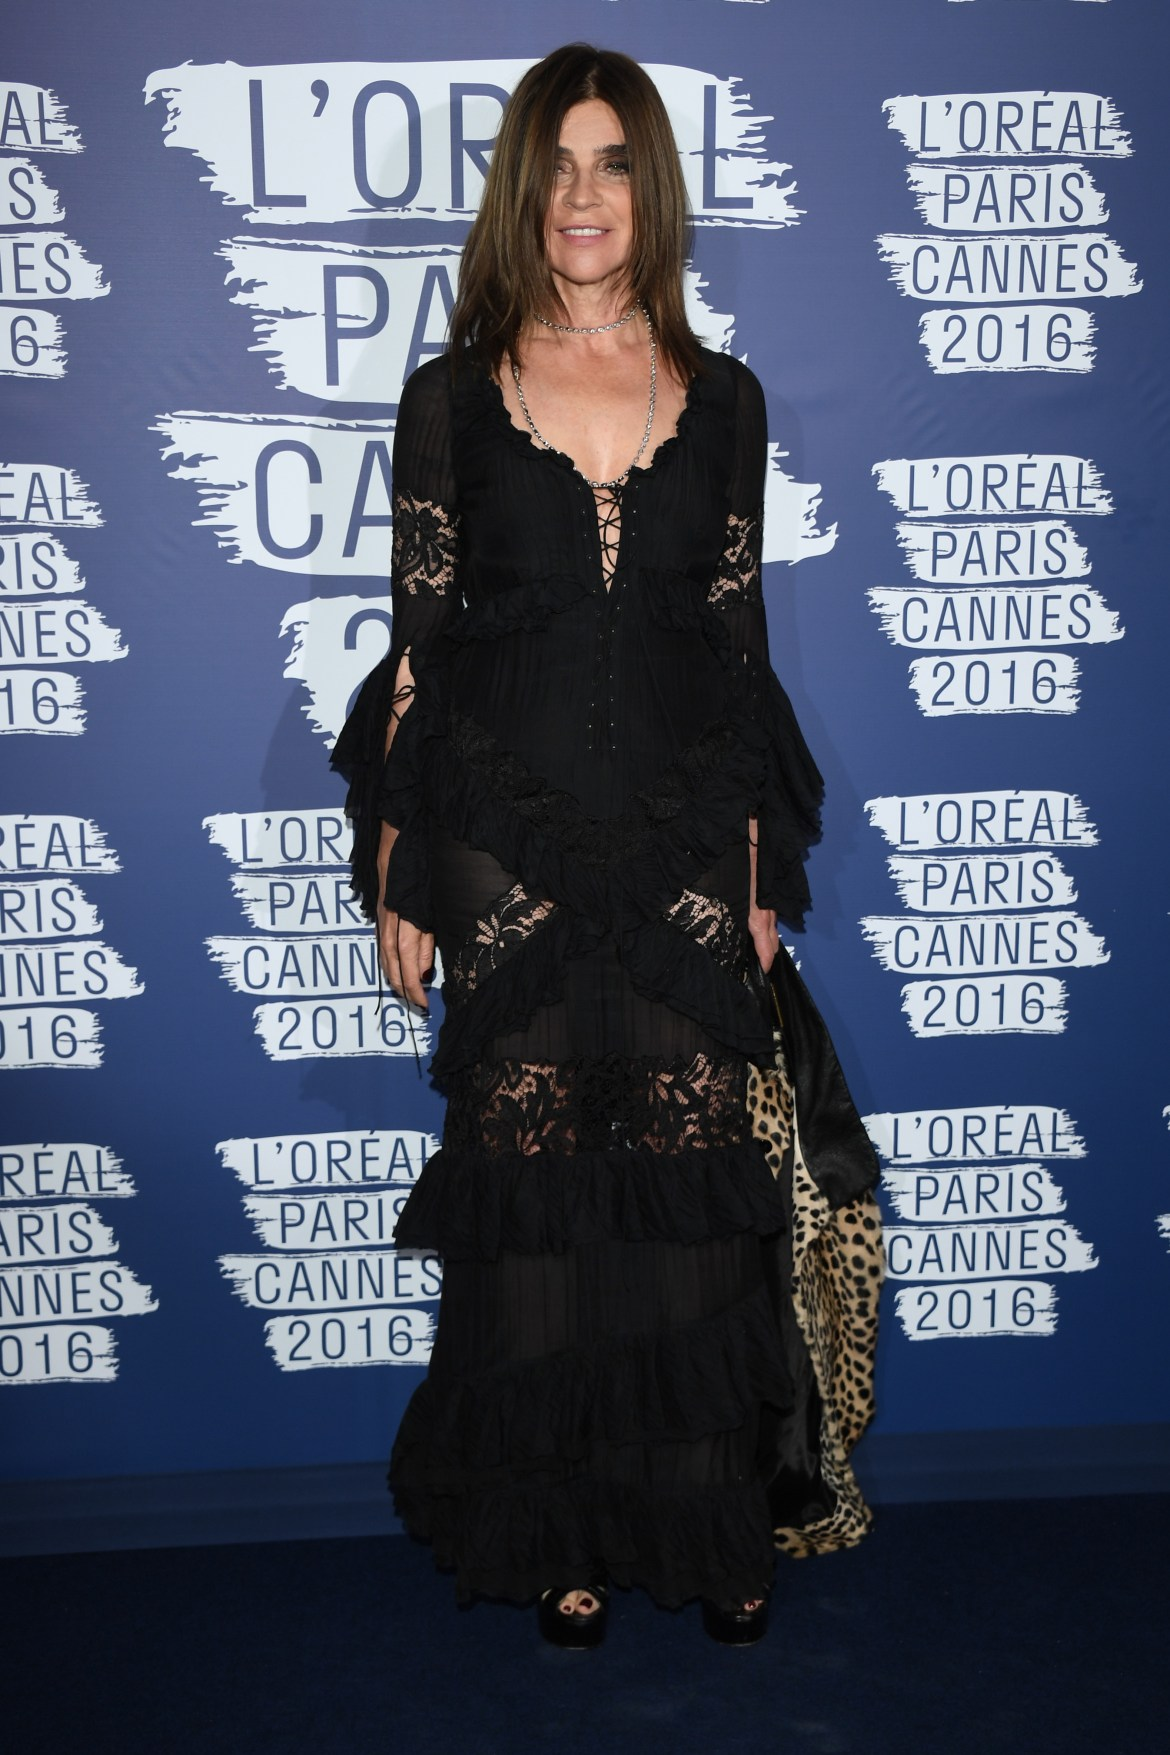 CANNES, FRANCE - MAY 18: Carine Roitfeld attends the L'Oreal Party during the annual 69th Cannes Film Festival at on May 18, 2016 in Cannes, France. (Photo by Venturelli/WireImage)